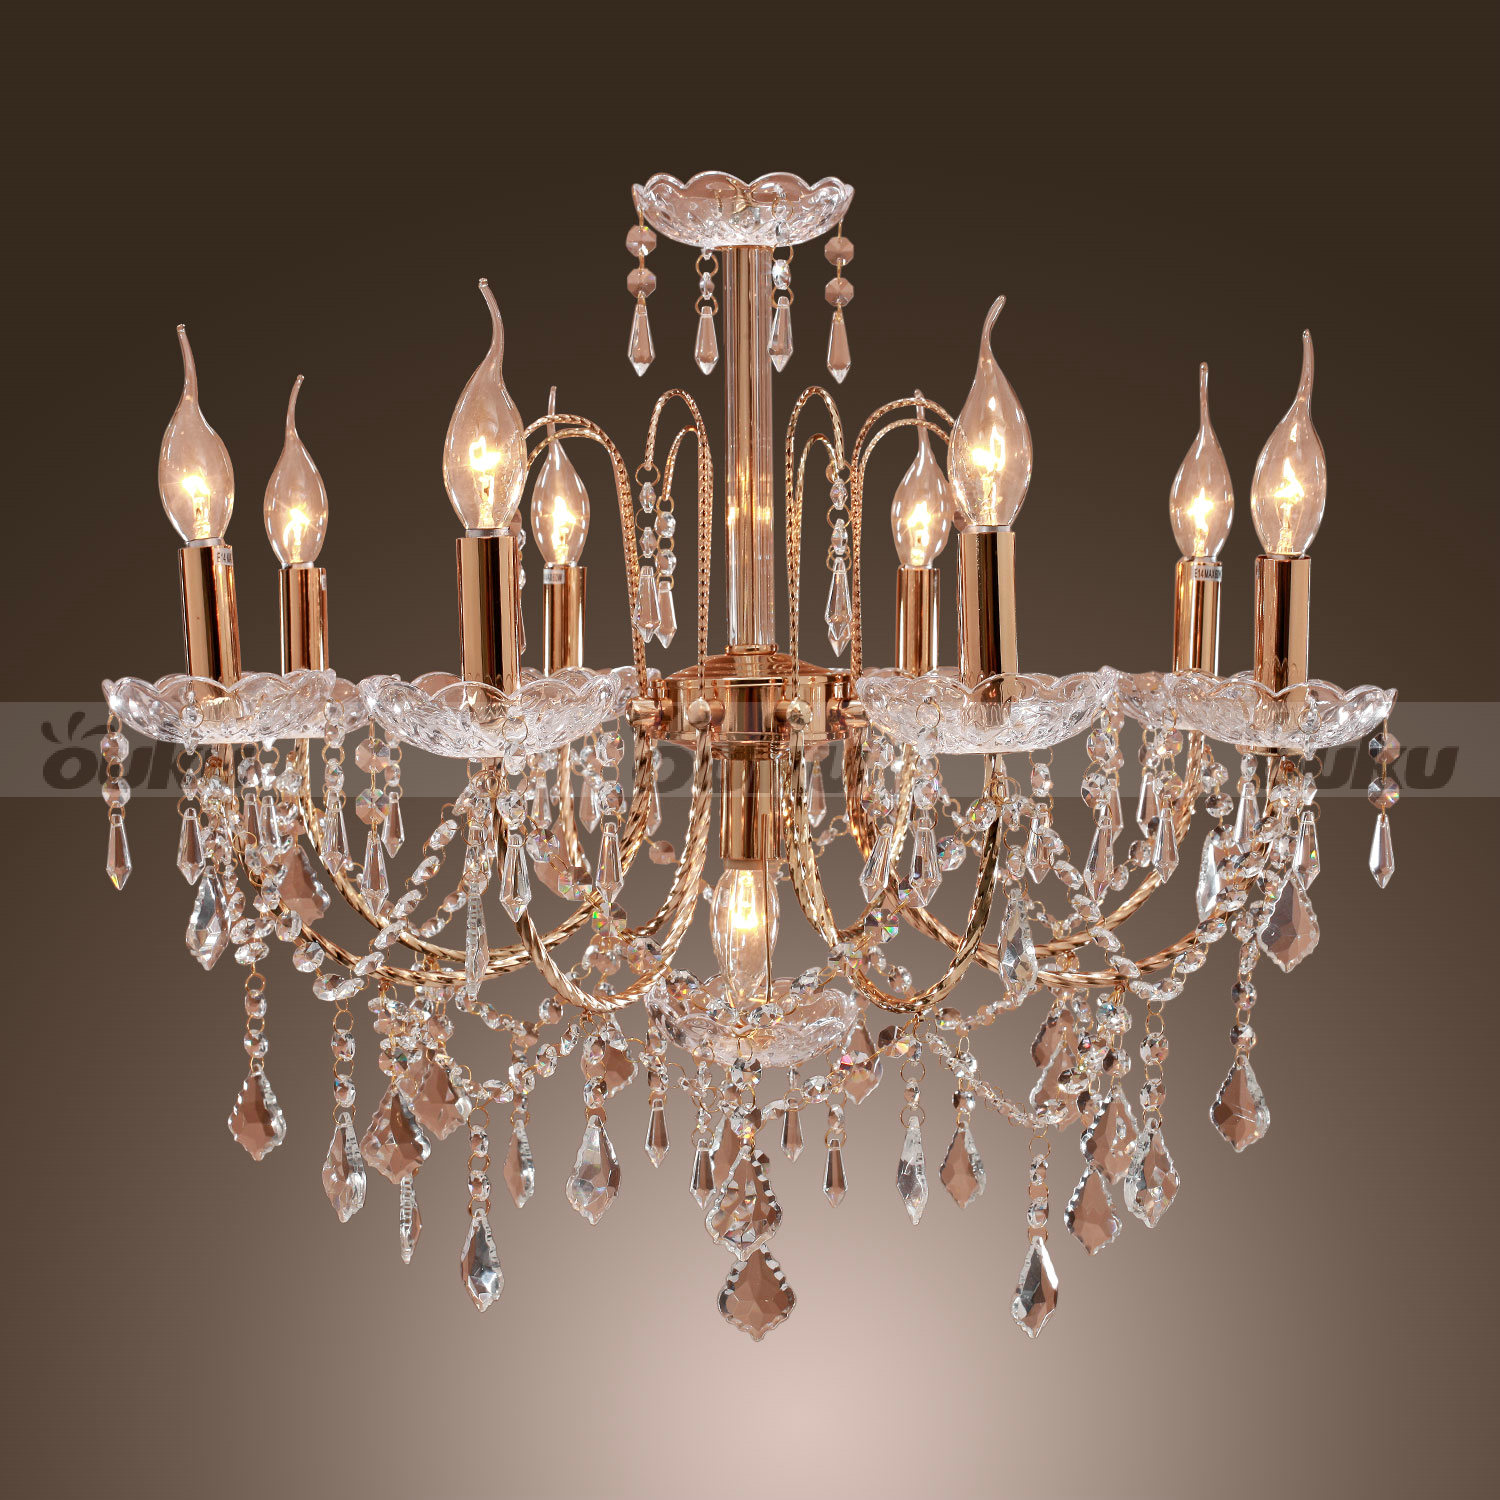 Crystal Candle Style Elegant 9 Lights Chandelier Uplight Pendant